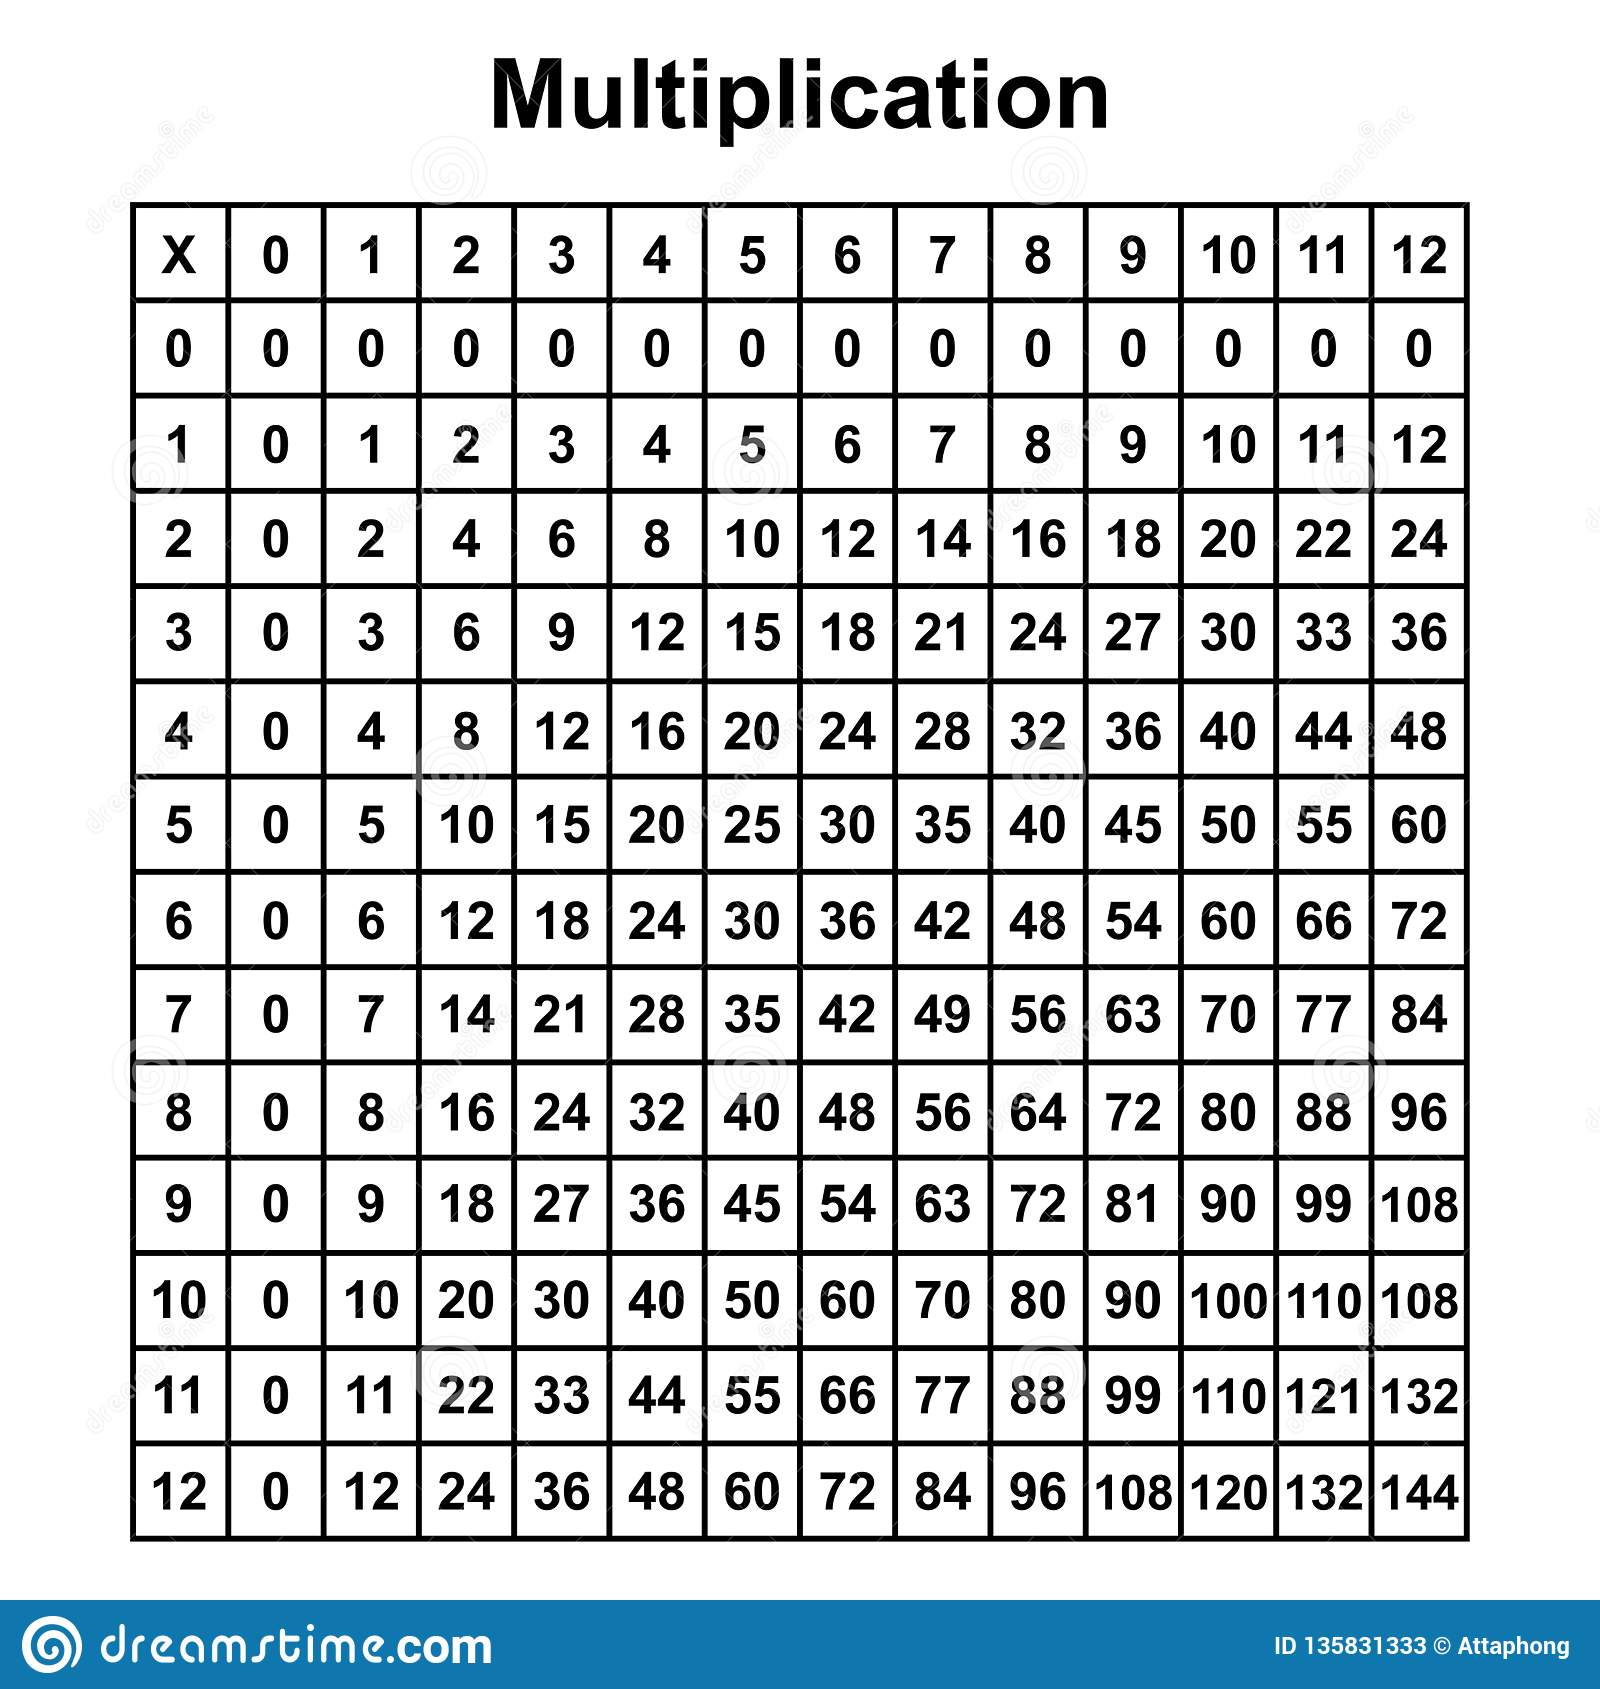 Multiplication Table Chart Or Multiplication Table Printable for Printable Multiplication Table Free